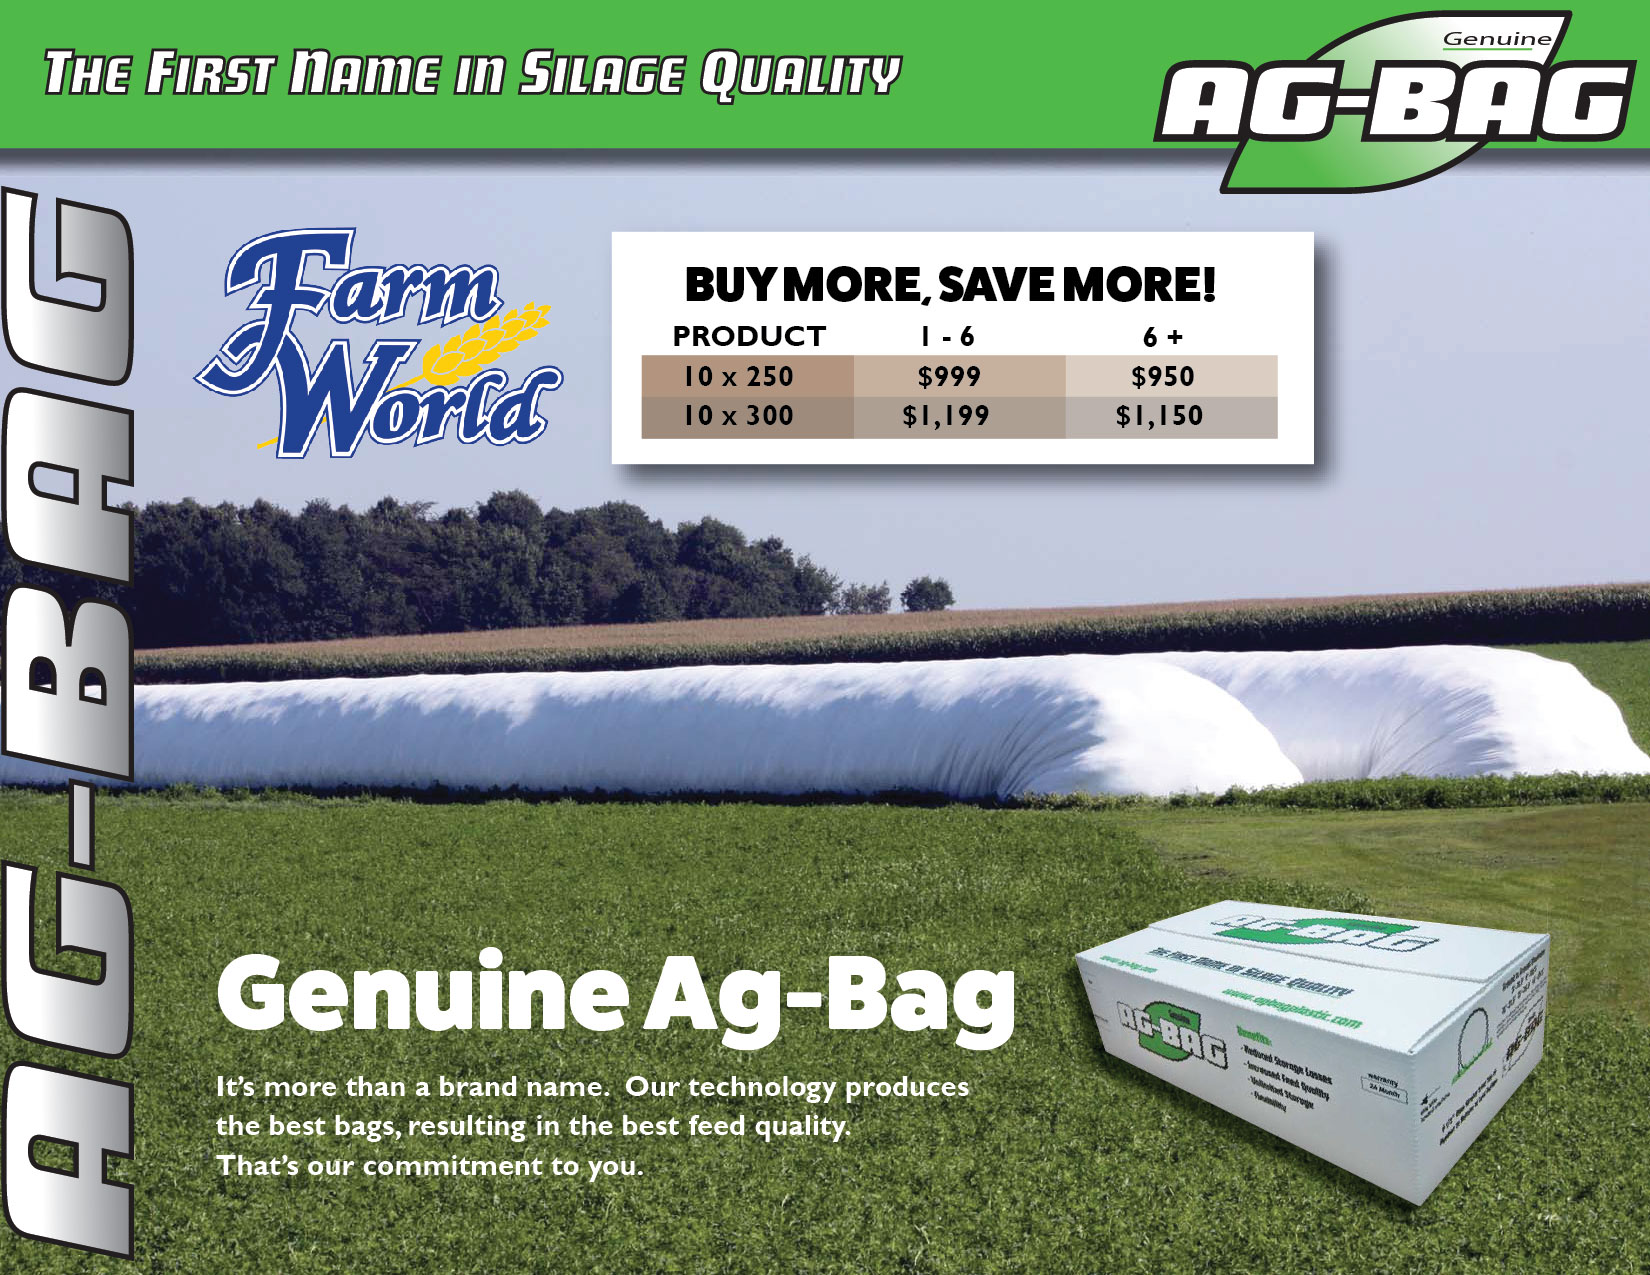 AG-BAG Buy More, Save More! - Image 3